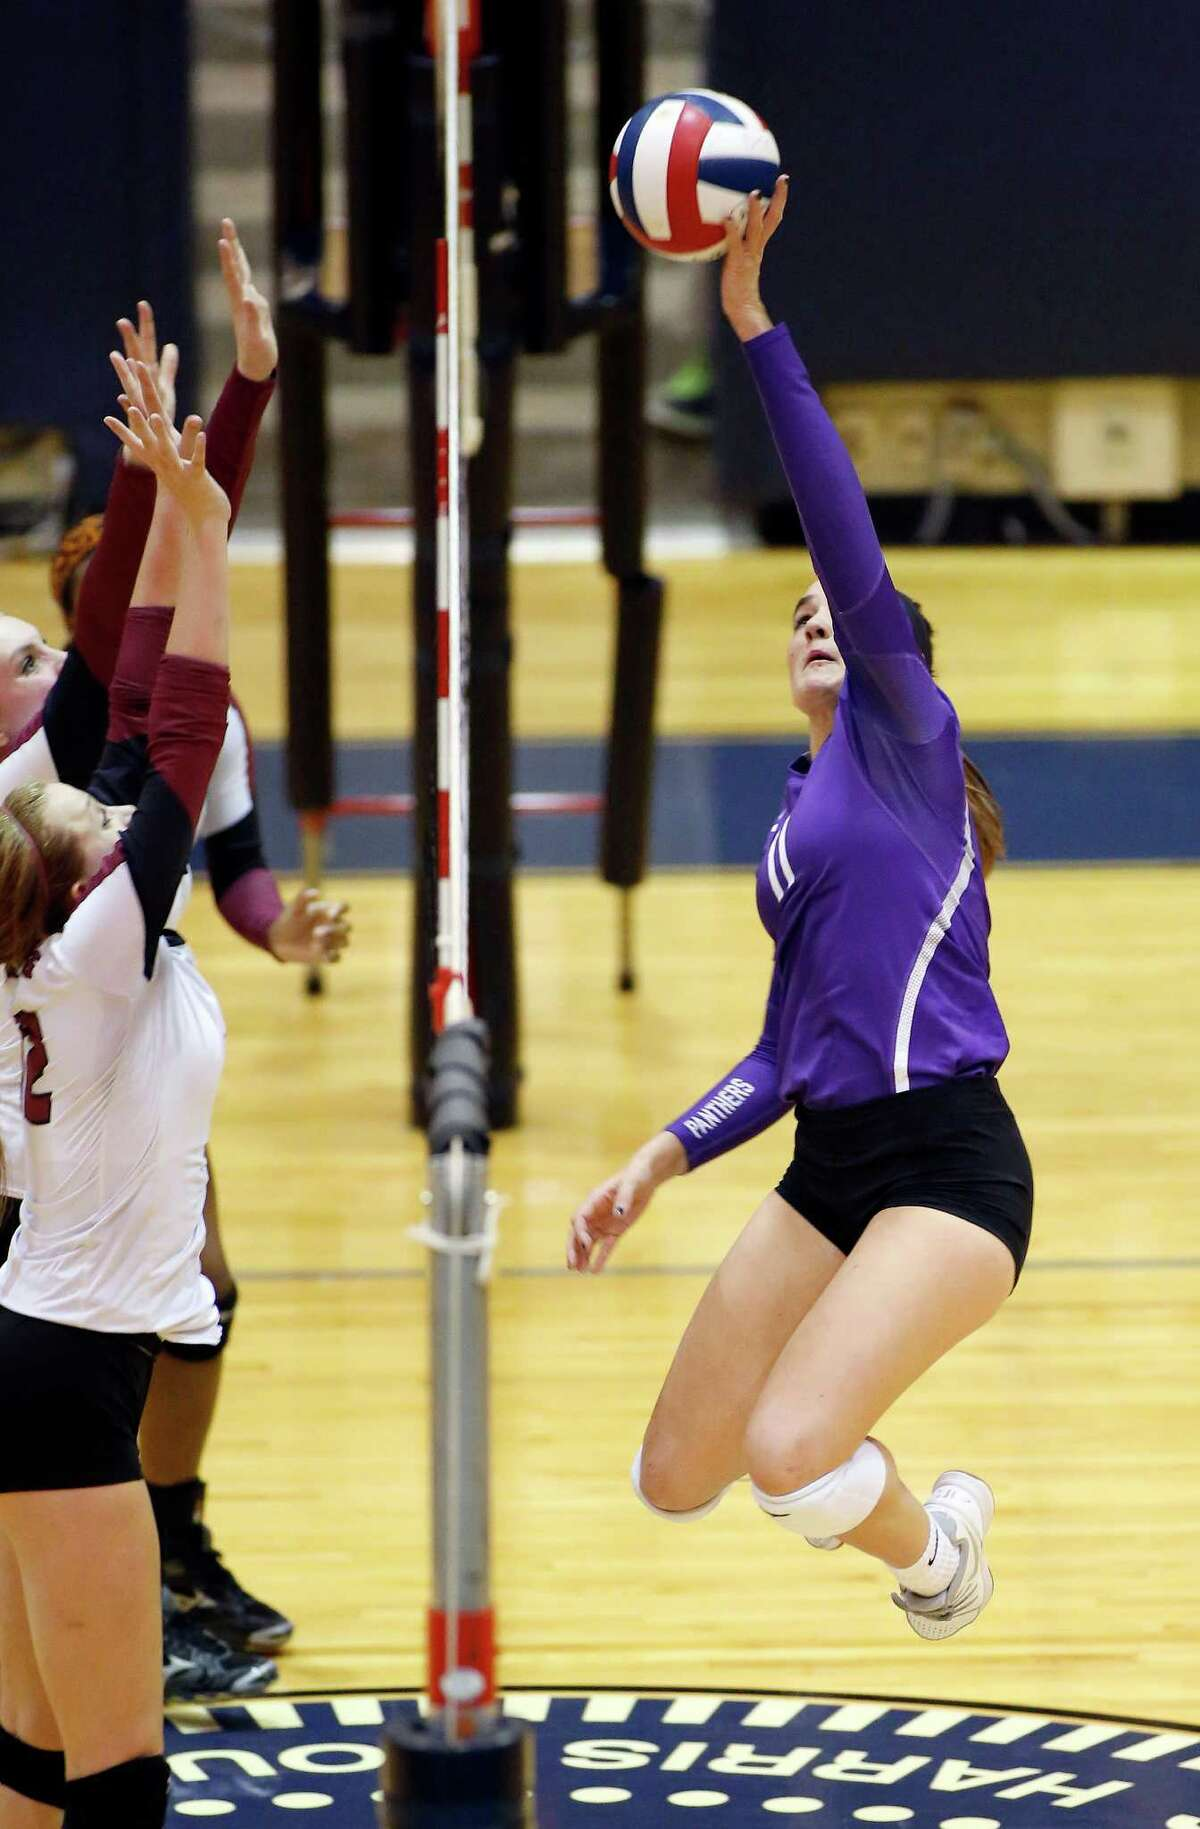 High school playoff match between George Ranch and Ridge Point at Coleman Coliseum, 1050 North Dairy Ashford. ID: Ridge Point #11 Brooke Rutherford returns a shot from the George Ranch Players. Tuesday November 11, 2014 (Craig H. Hartley/For the Chronicle)